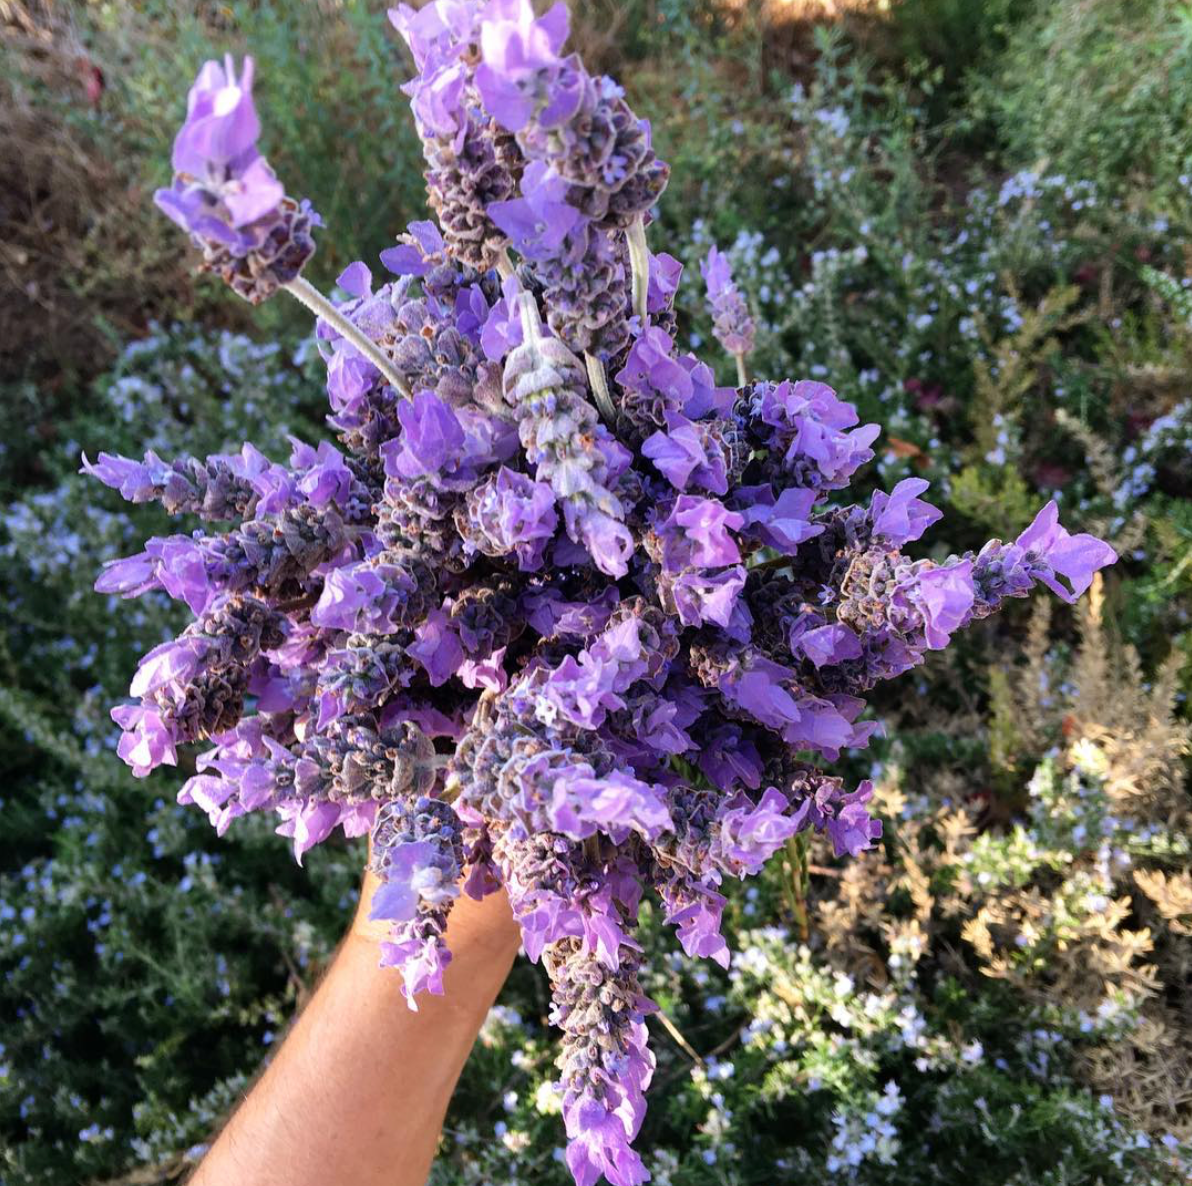 A bunch of Lavender at a biodynamic garden at One Gun Ranch in Malibu